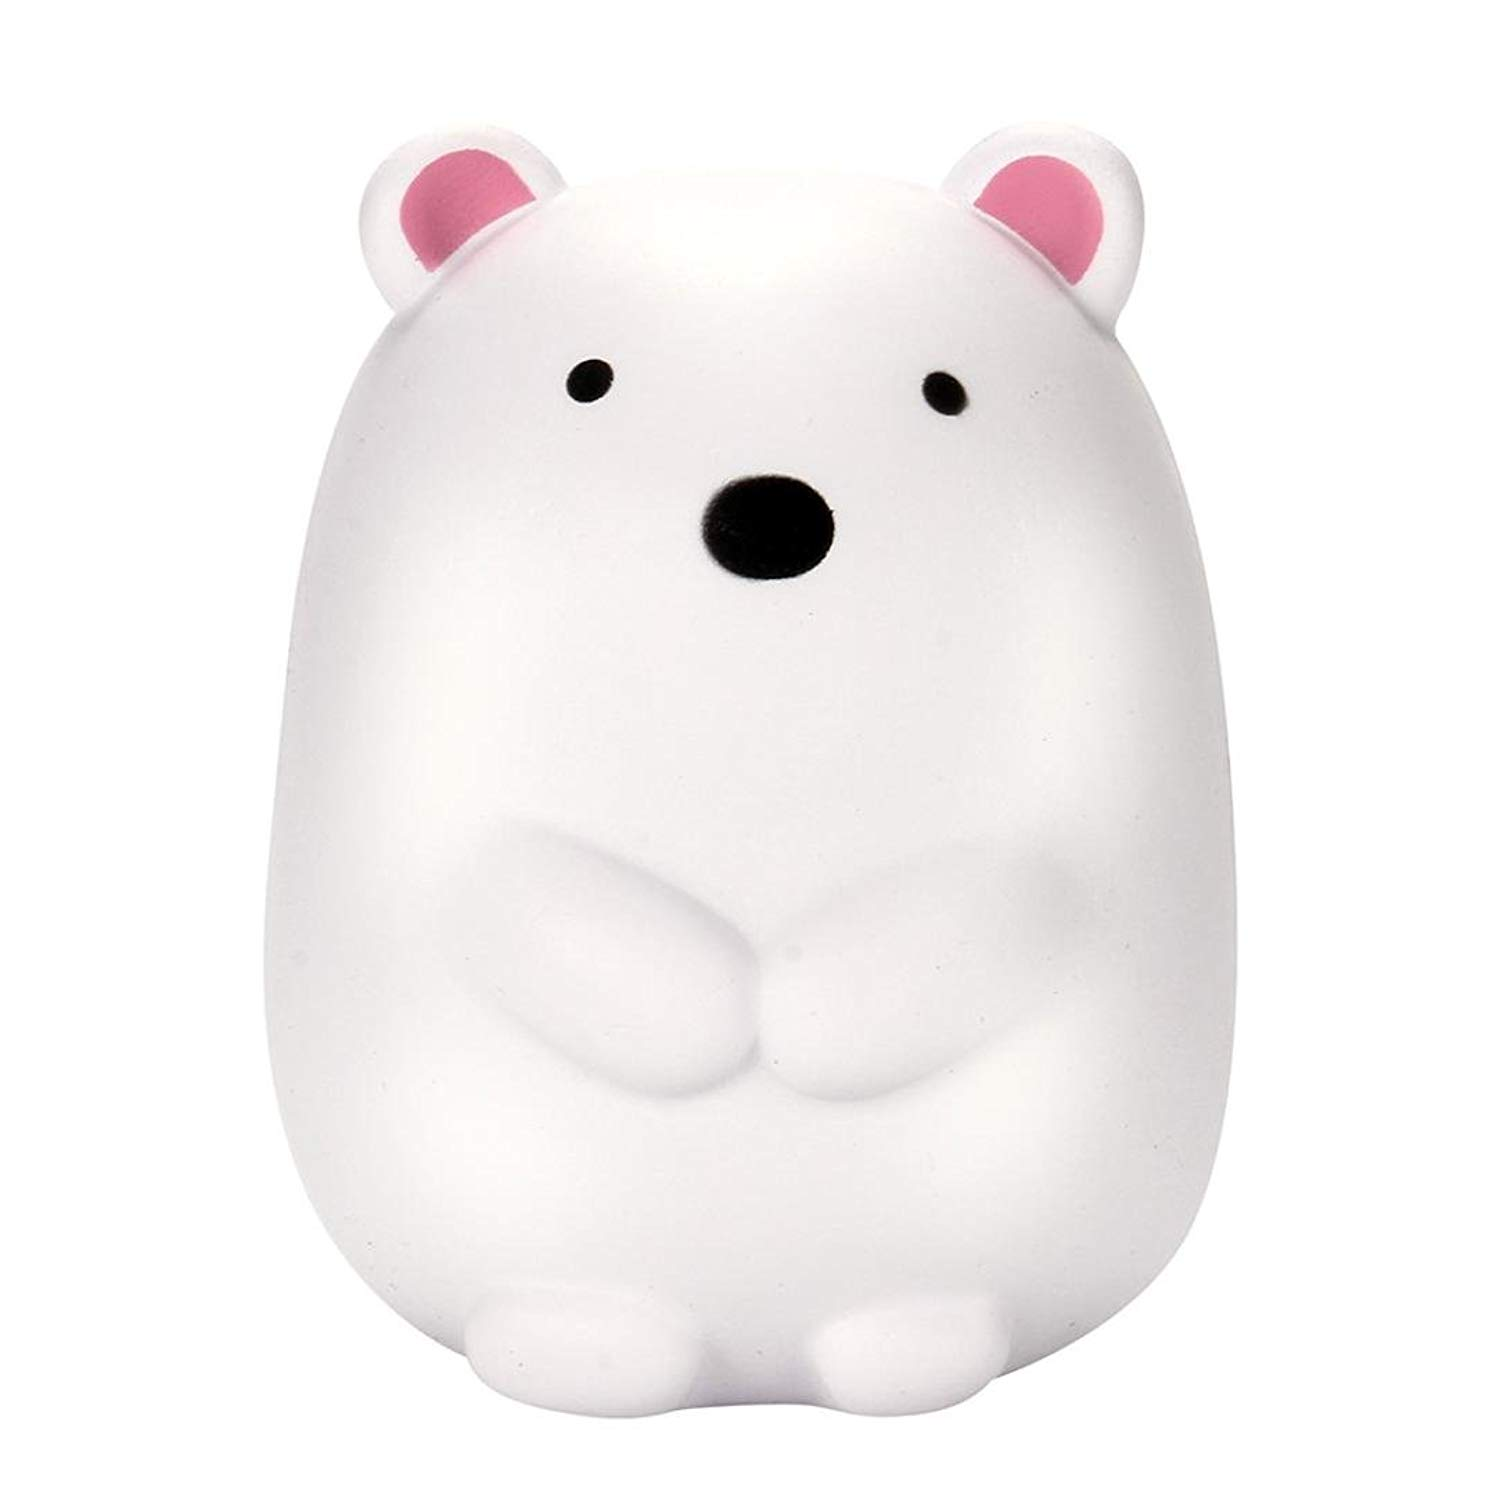 Malbaba Cute Cute Toys, 12cm Jumbo Squishy Cute Polar Bear Cream Scented Squishies Slow Rising Charm Toy for More Than 6 Years Old